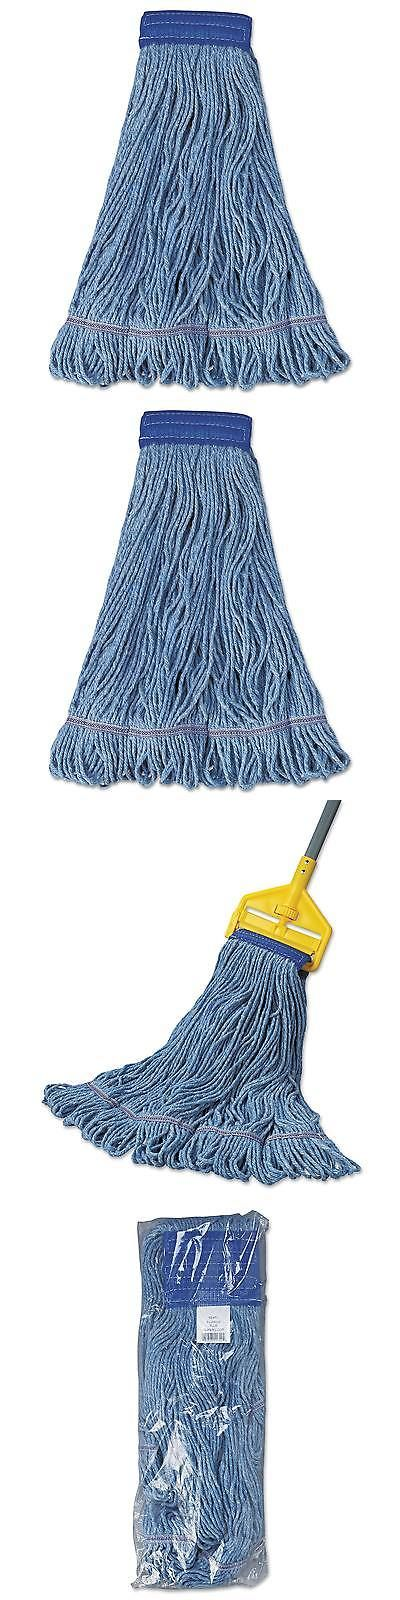 Mops and Brooms 20607: Boardwalk Mop Head Super Loop Head Cotton Synthetic Fiber X-Large Blue 12 Carton -> BUY IT NOW ONLY: $201.99 on eBay!